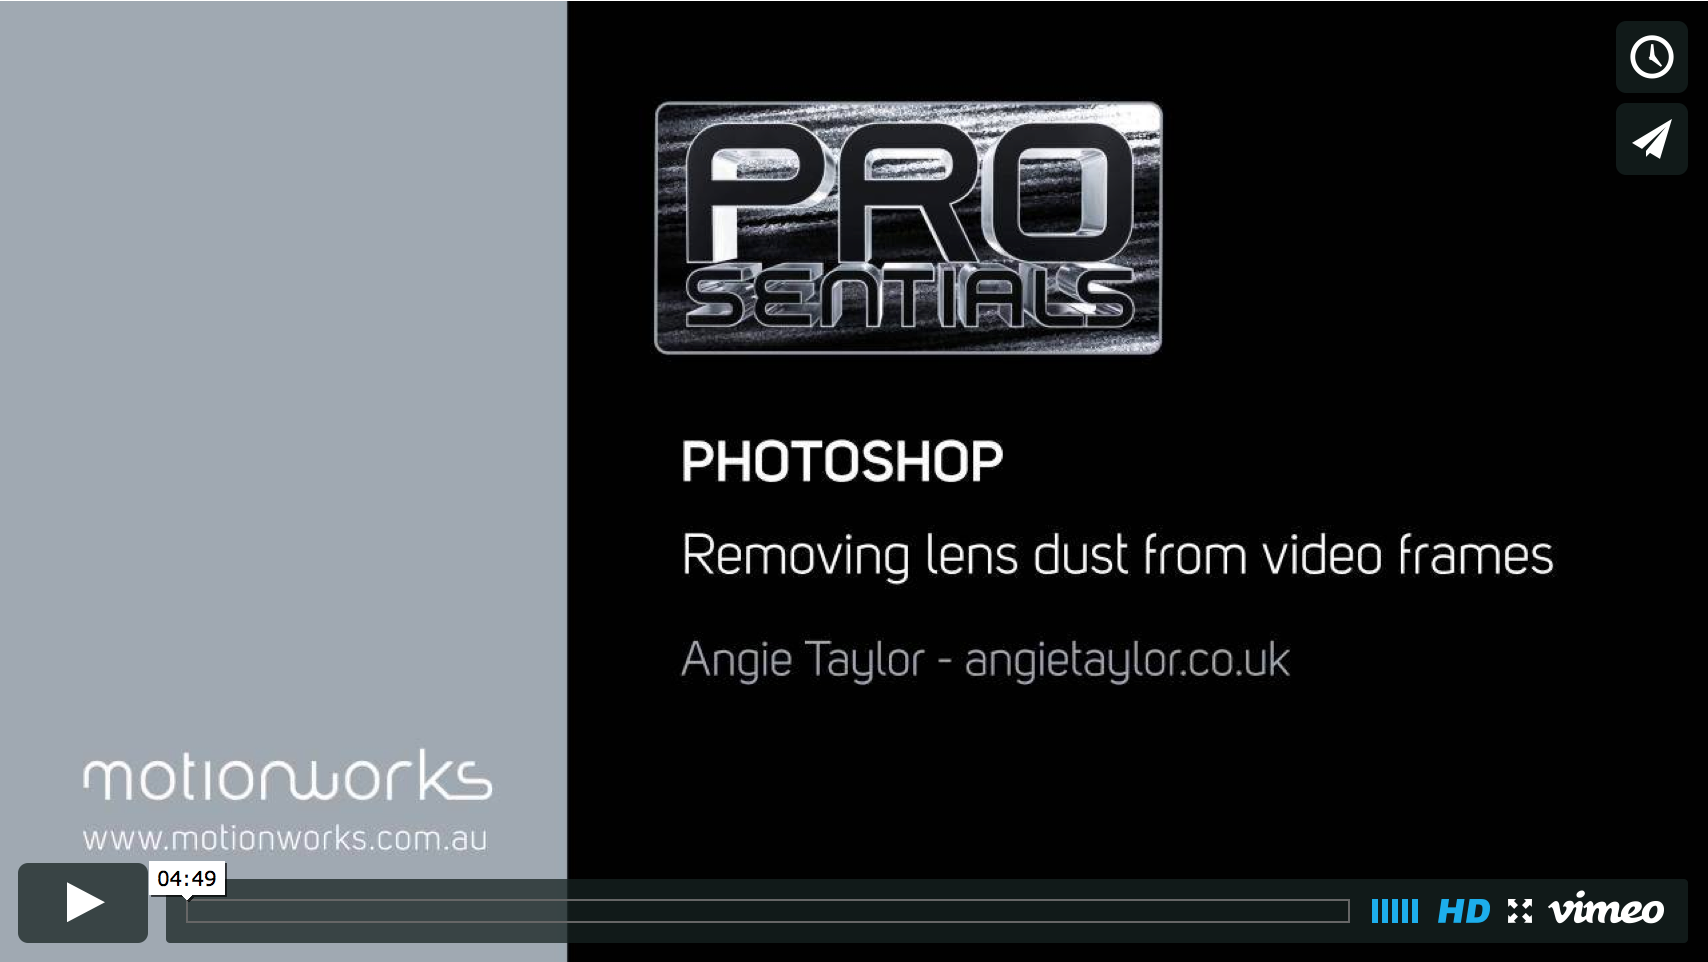 Removing dust from video frames with Photoshop